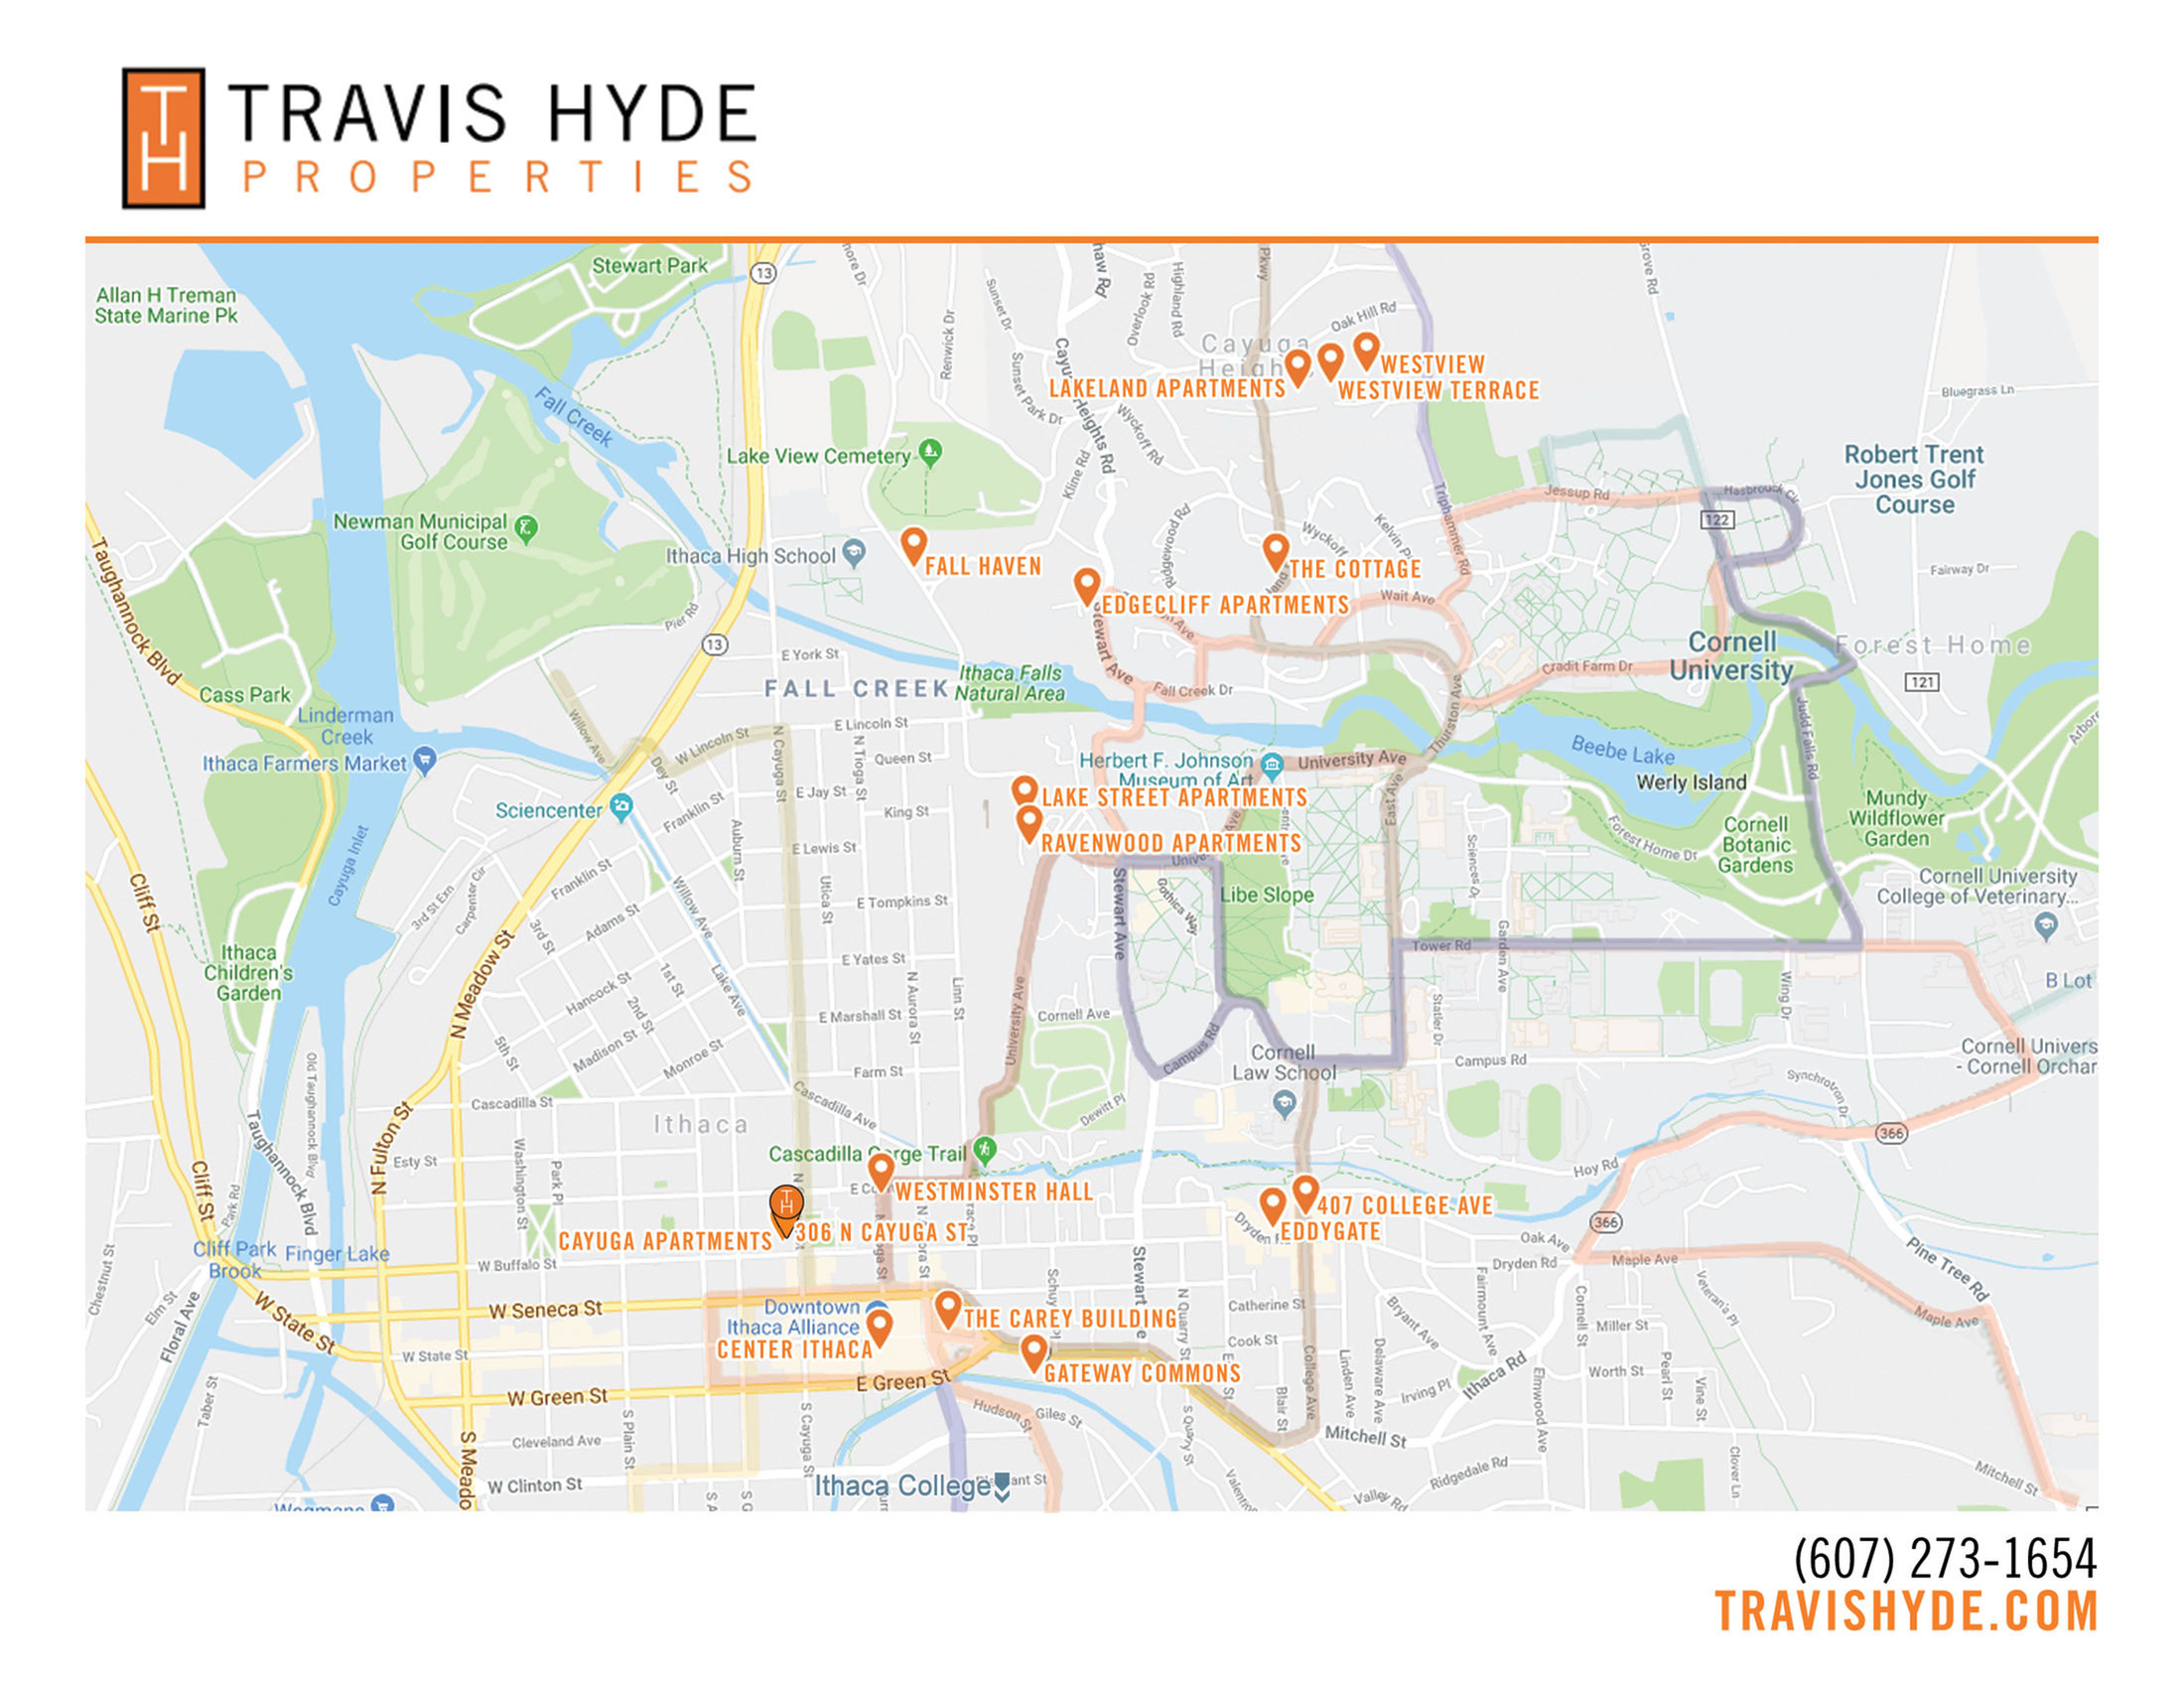 Travis Hyde Properties Ithaca Apartments Map